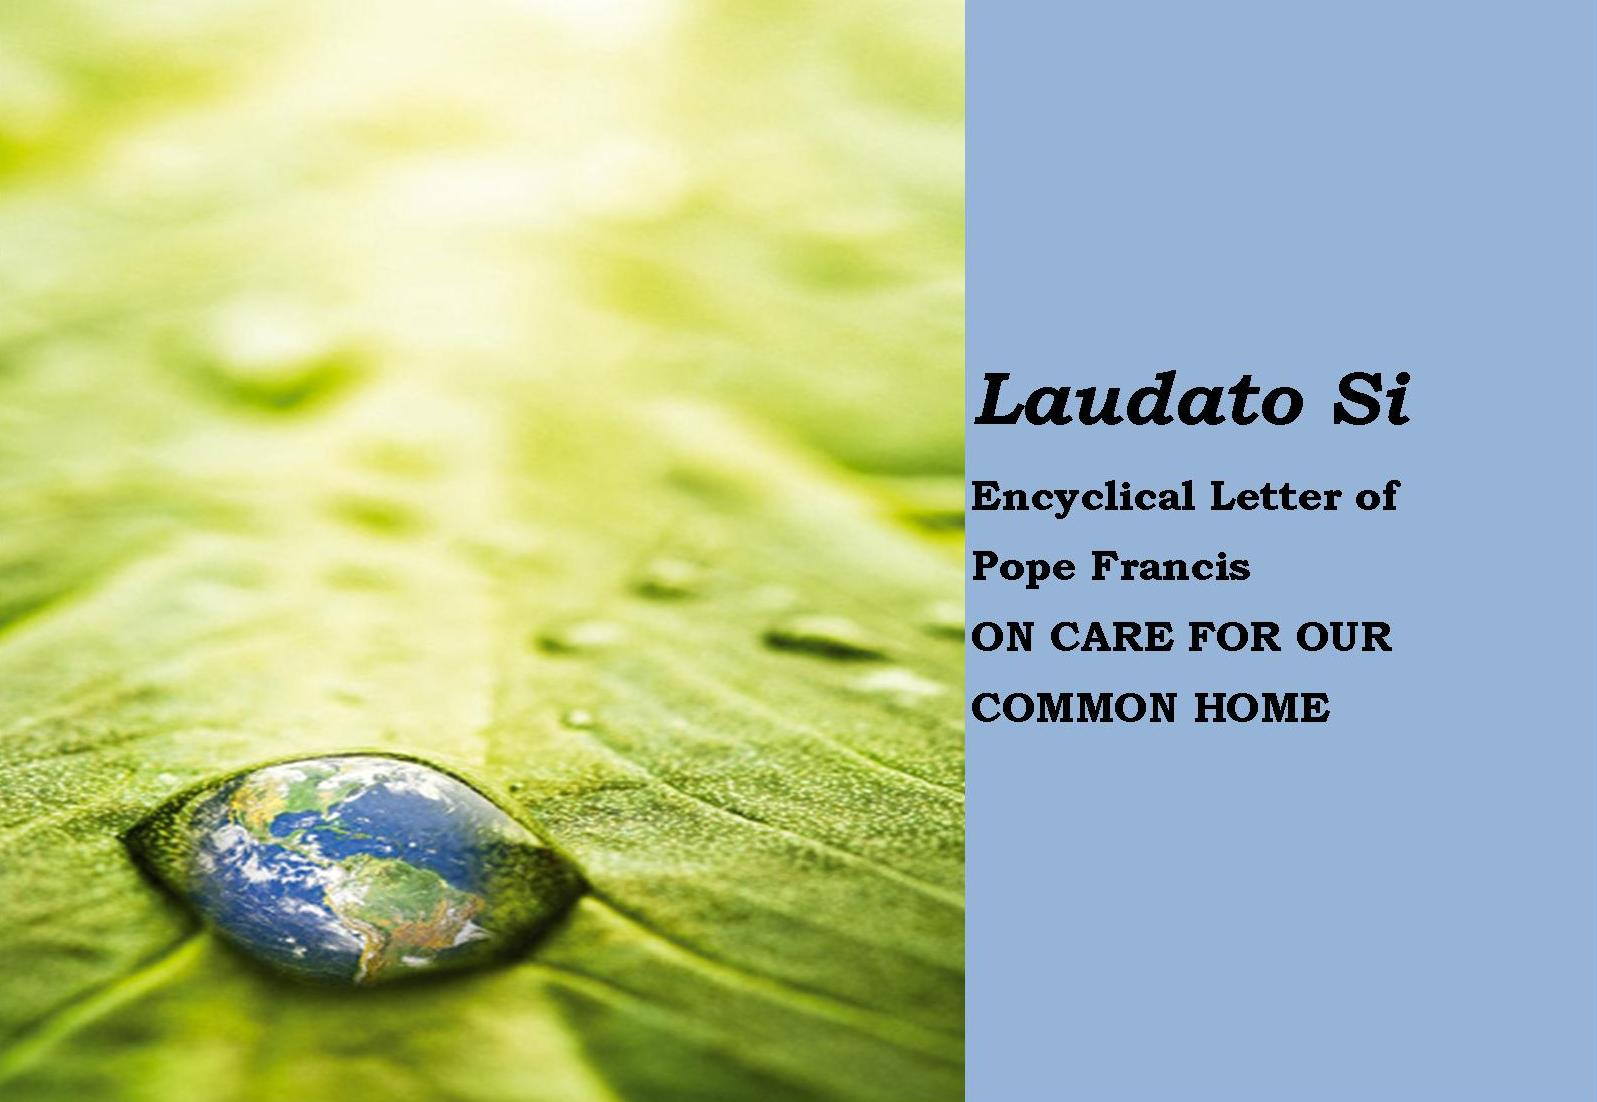 laudato si encyclical letter of pope francis on care for. Black Bedroom Furniture Sets. Home Design Ideas